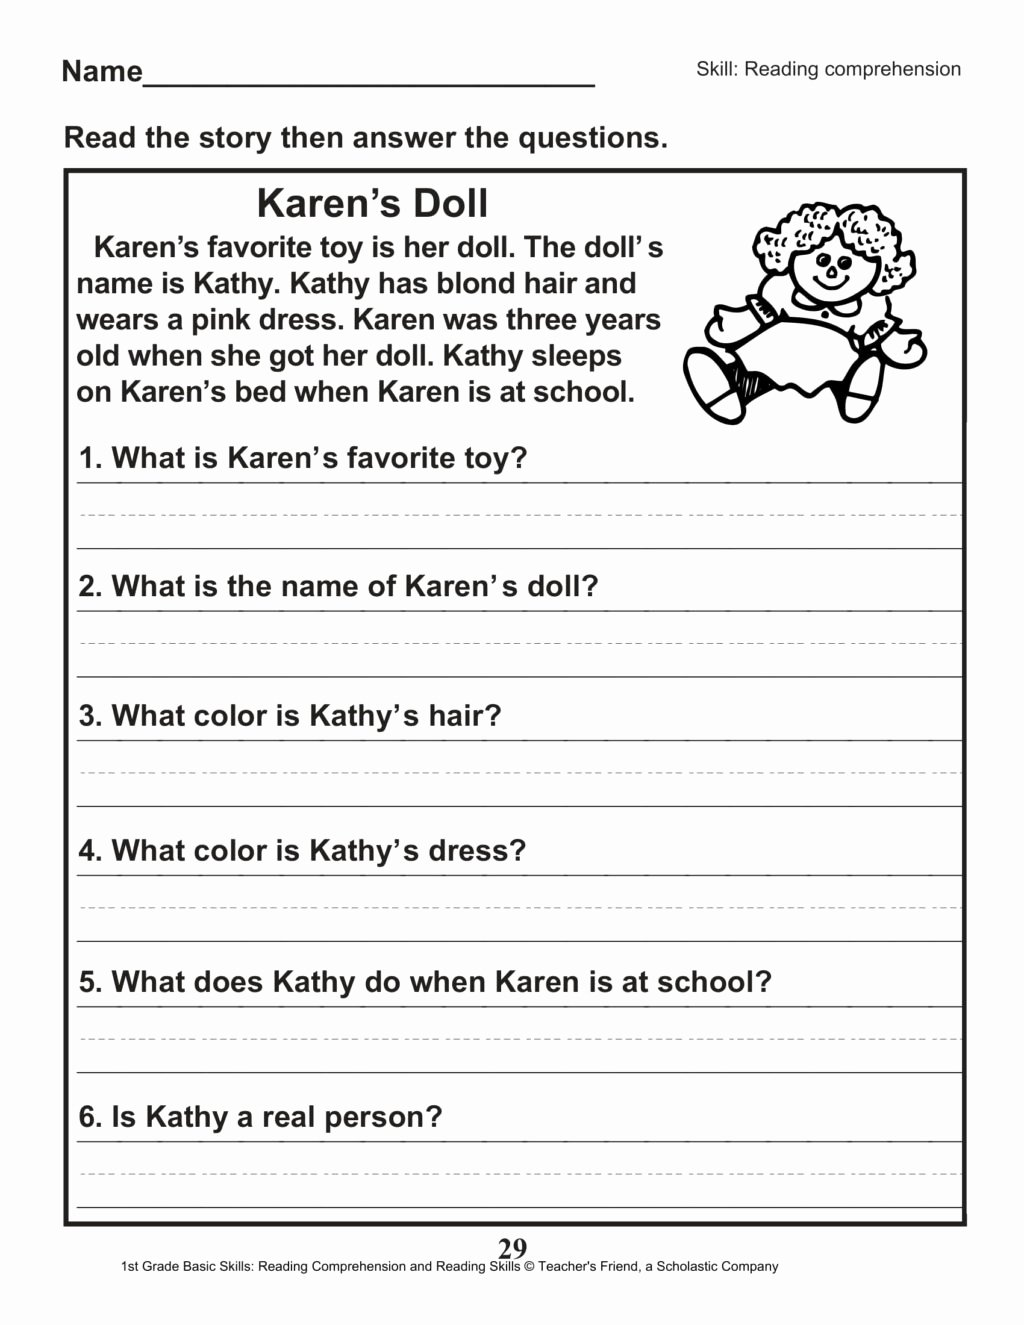 First Grade Reading Comprehension Worksheets top Worksheet 1st Grade Reading Prehension Worksheets Pdf